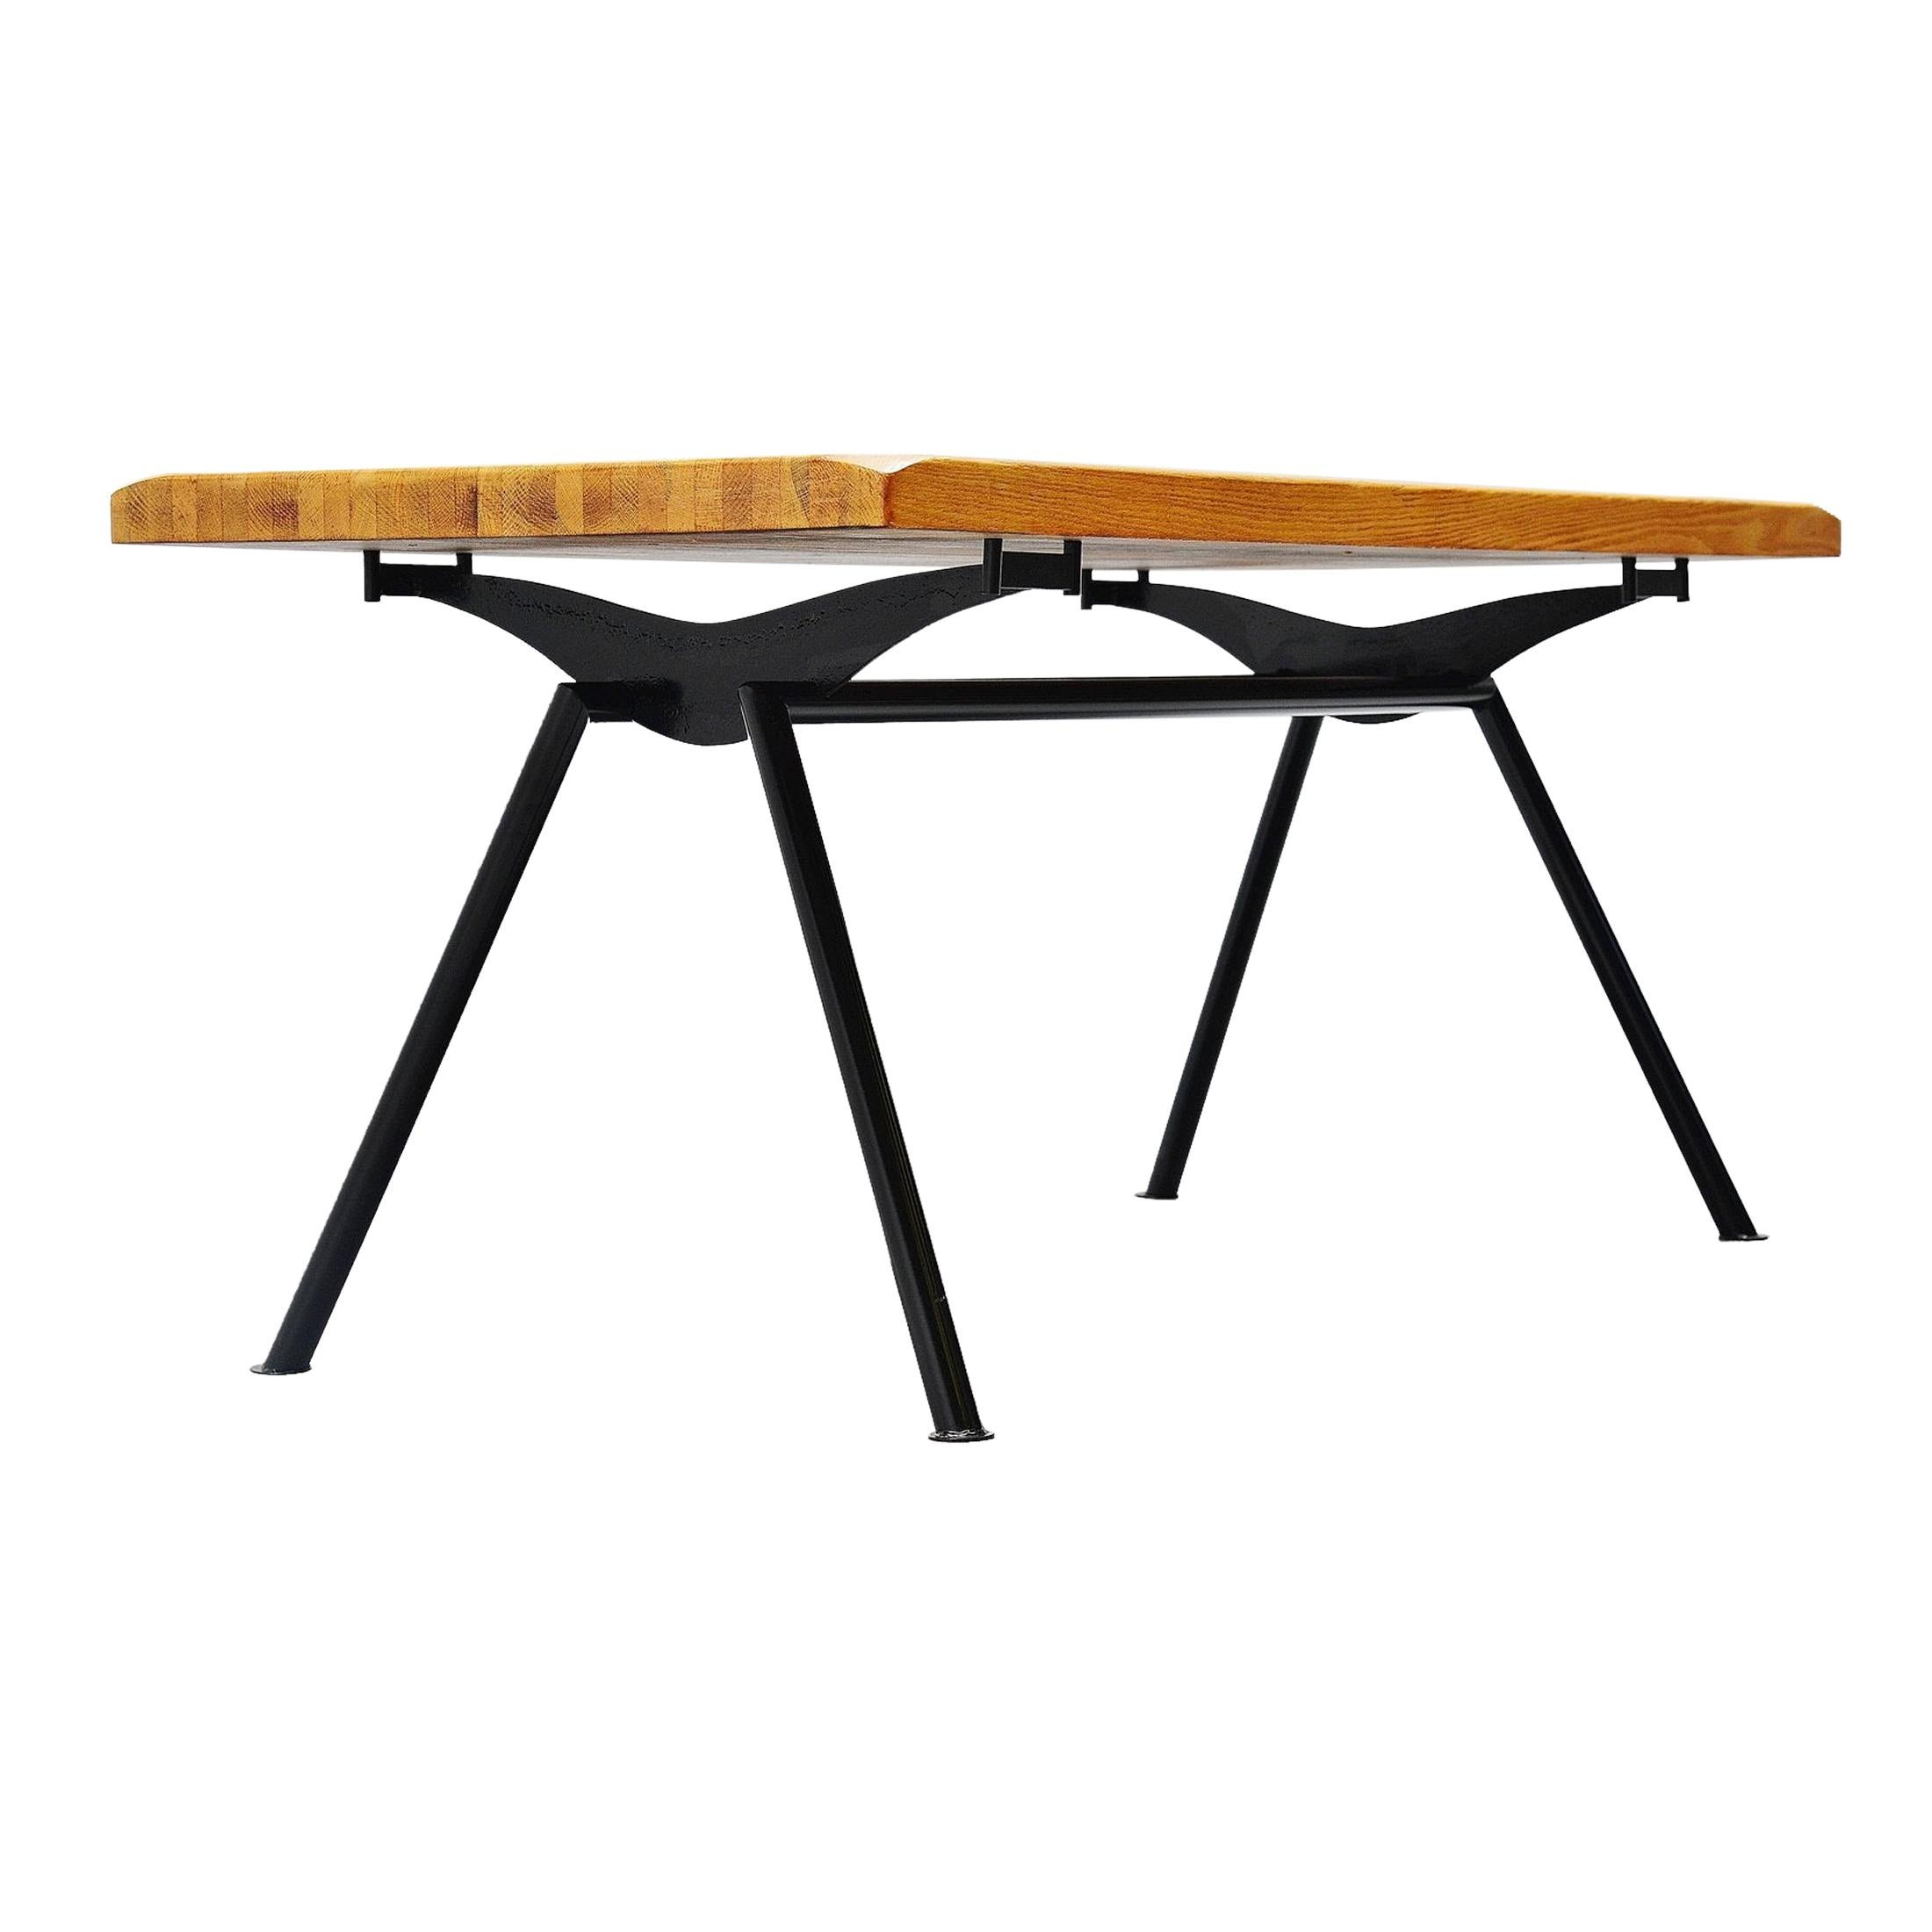 Jean Prouvé Style Quality Industrial Dining Table, France, 1960